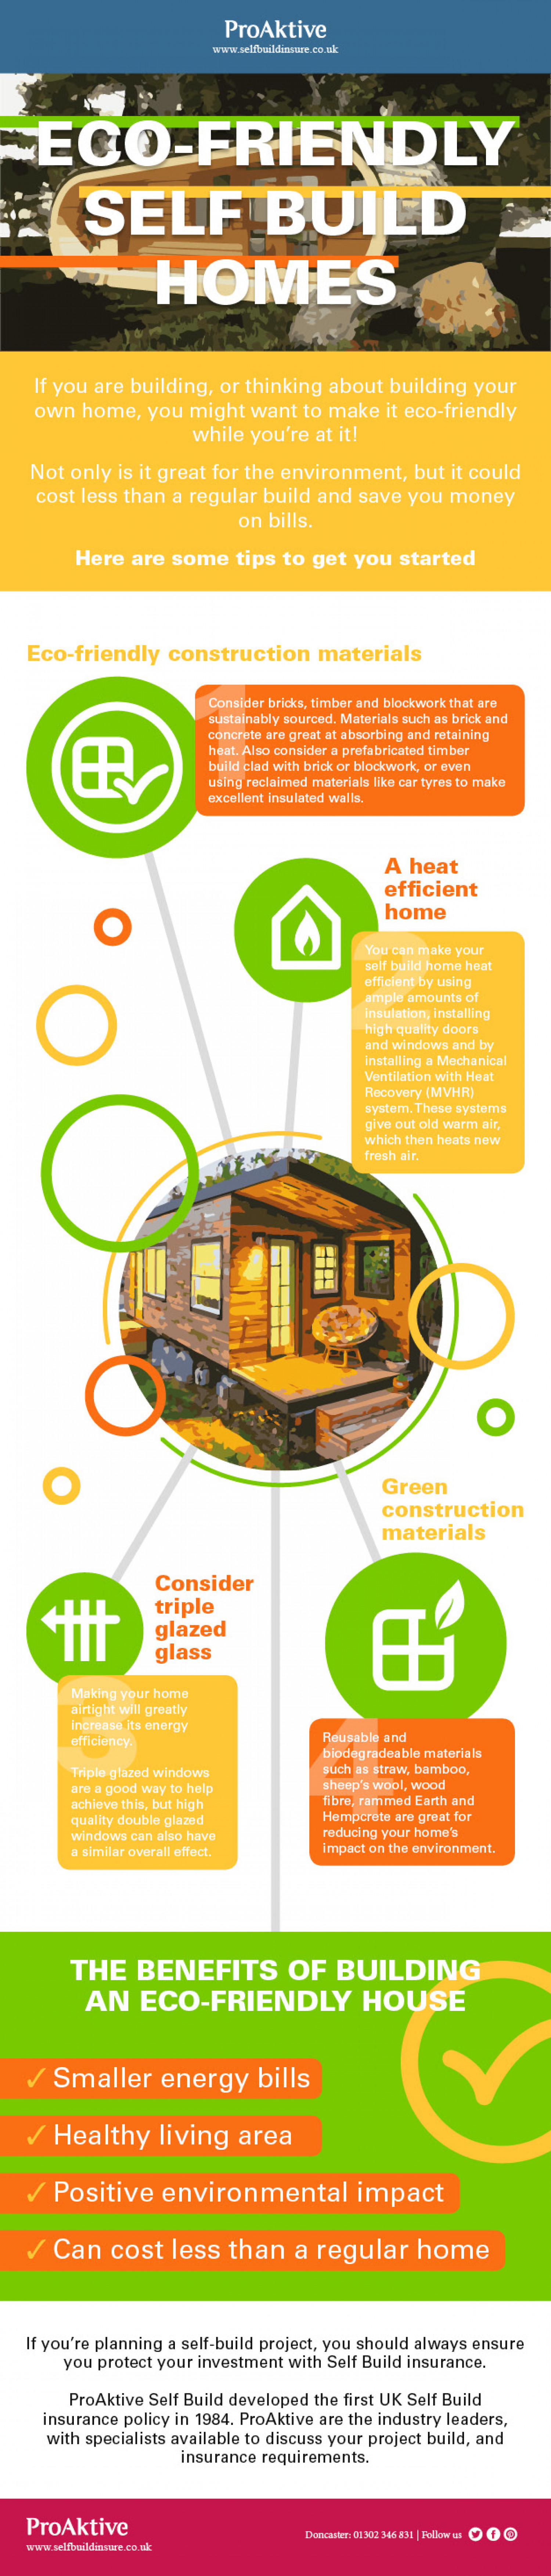 Eco-friendly Self Build Homes Infographic